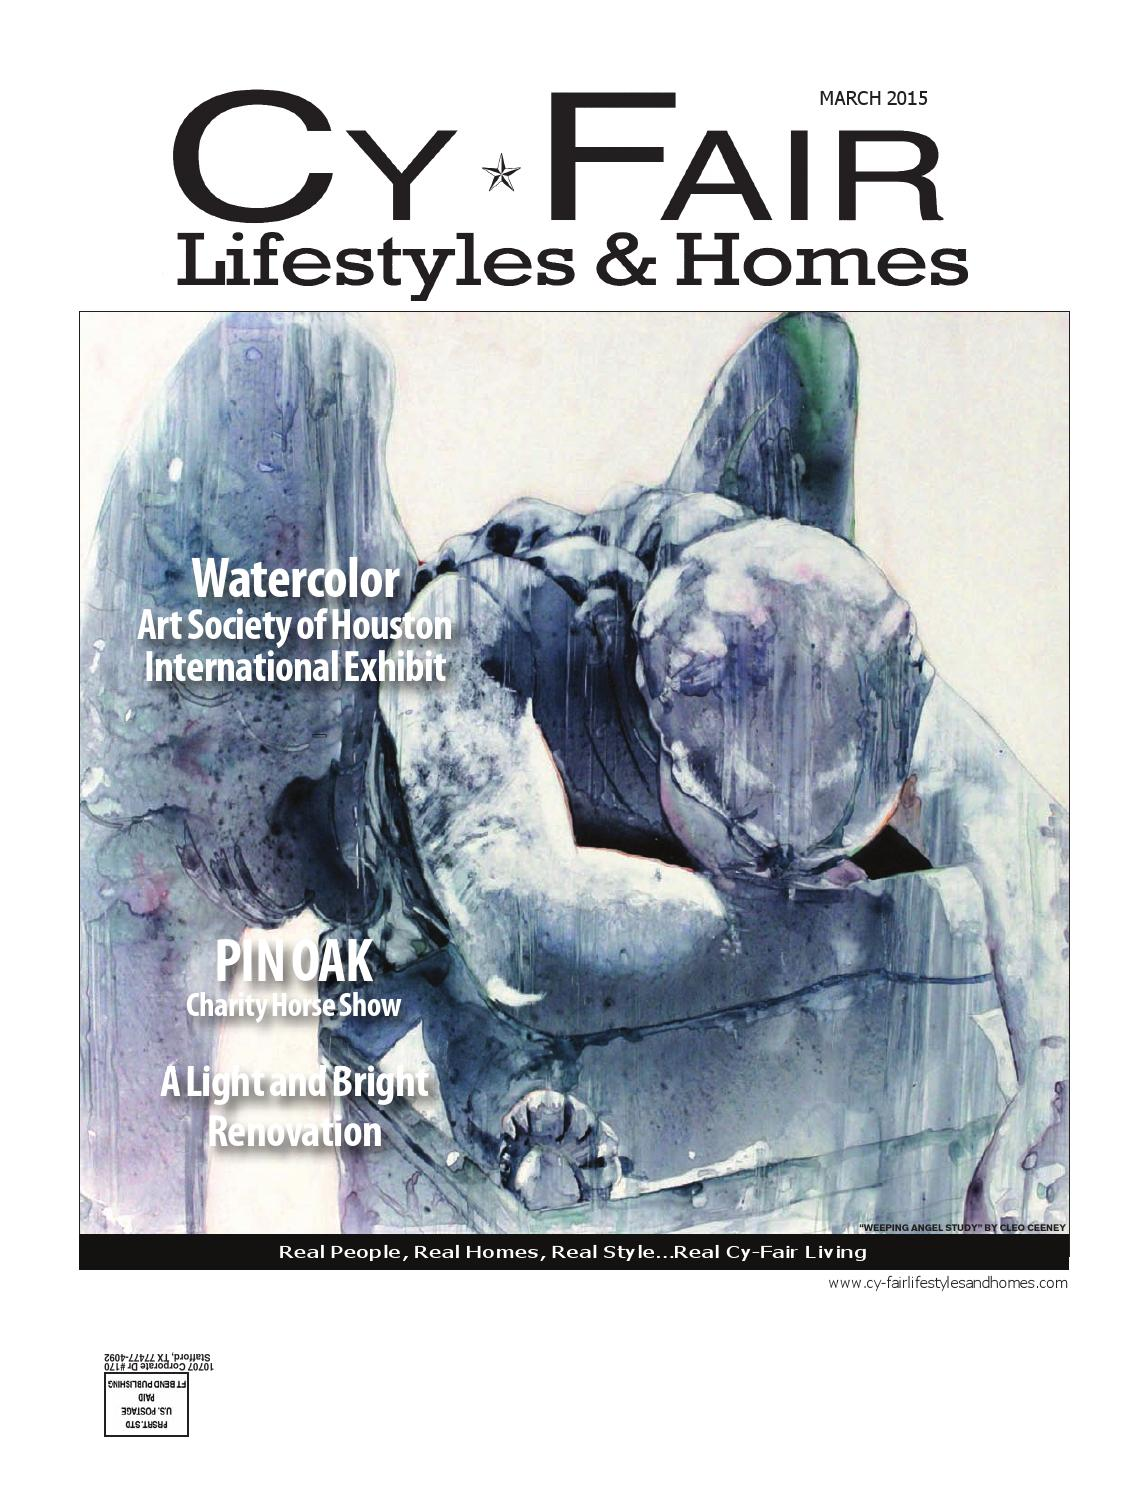 Watercolor art society of houston - Cy Fair Lifestyles Homes By Lifestyles Homes Magazines Fort Bend Publishing Issuu